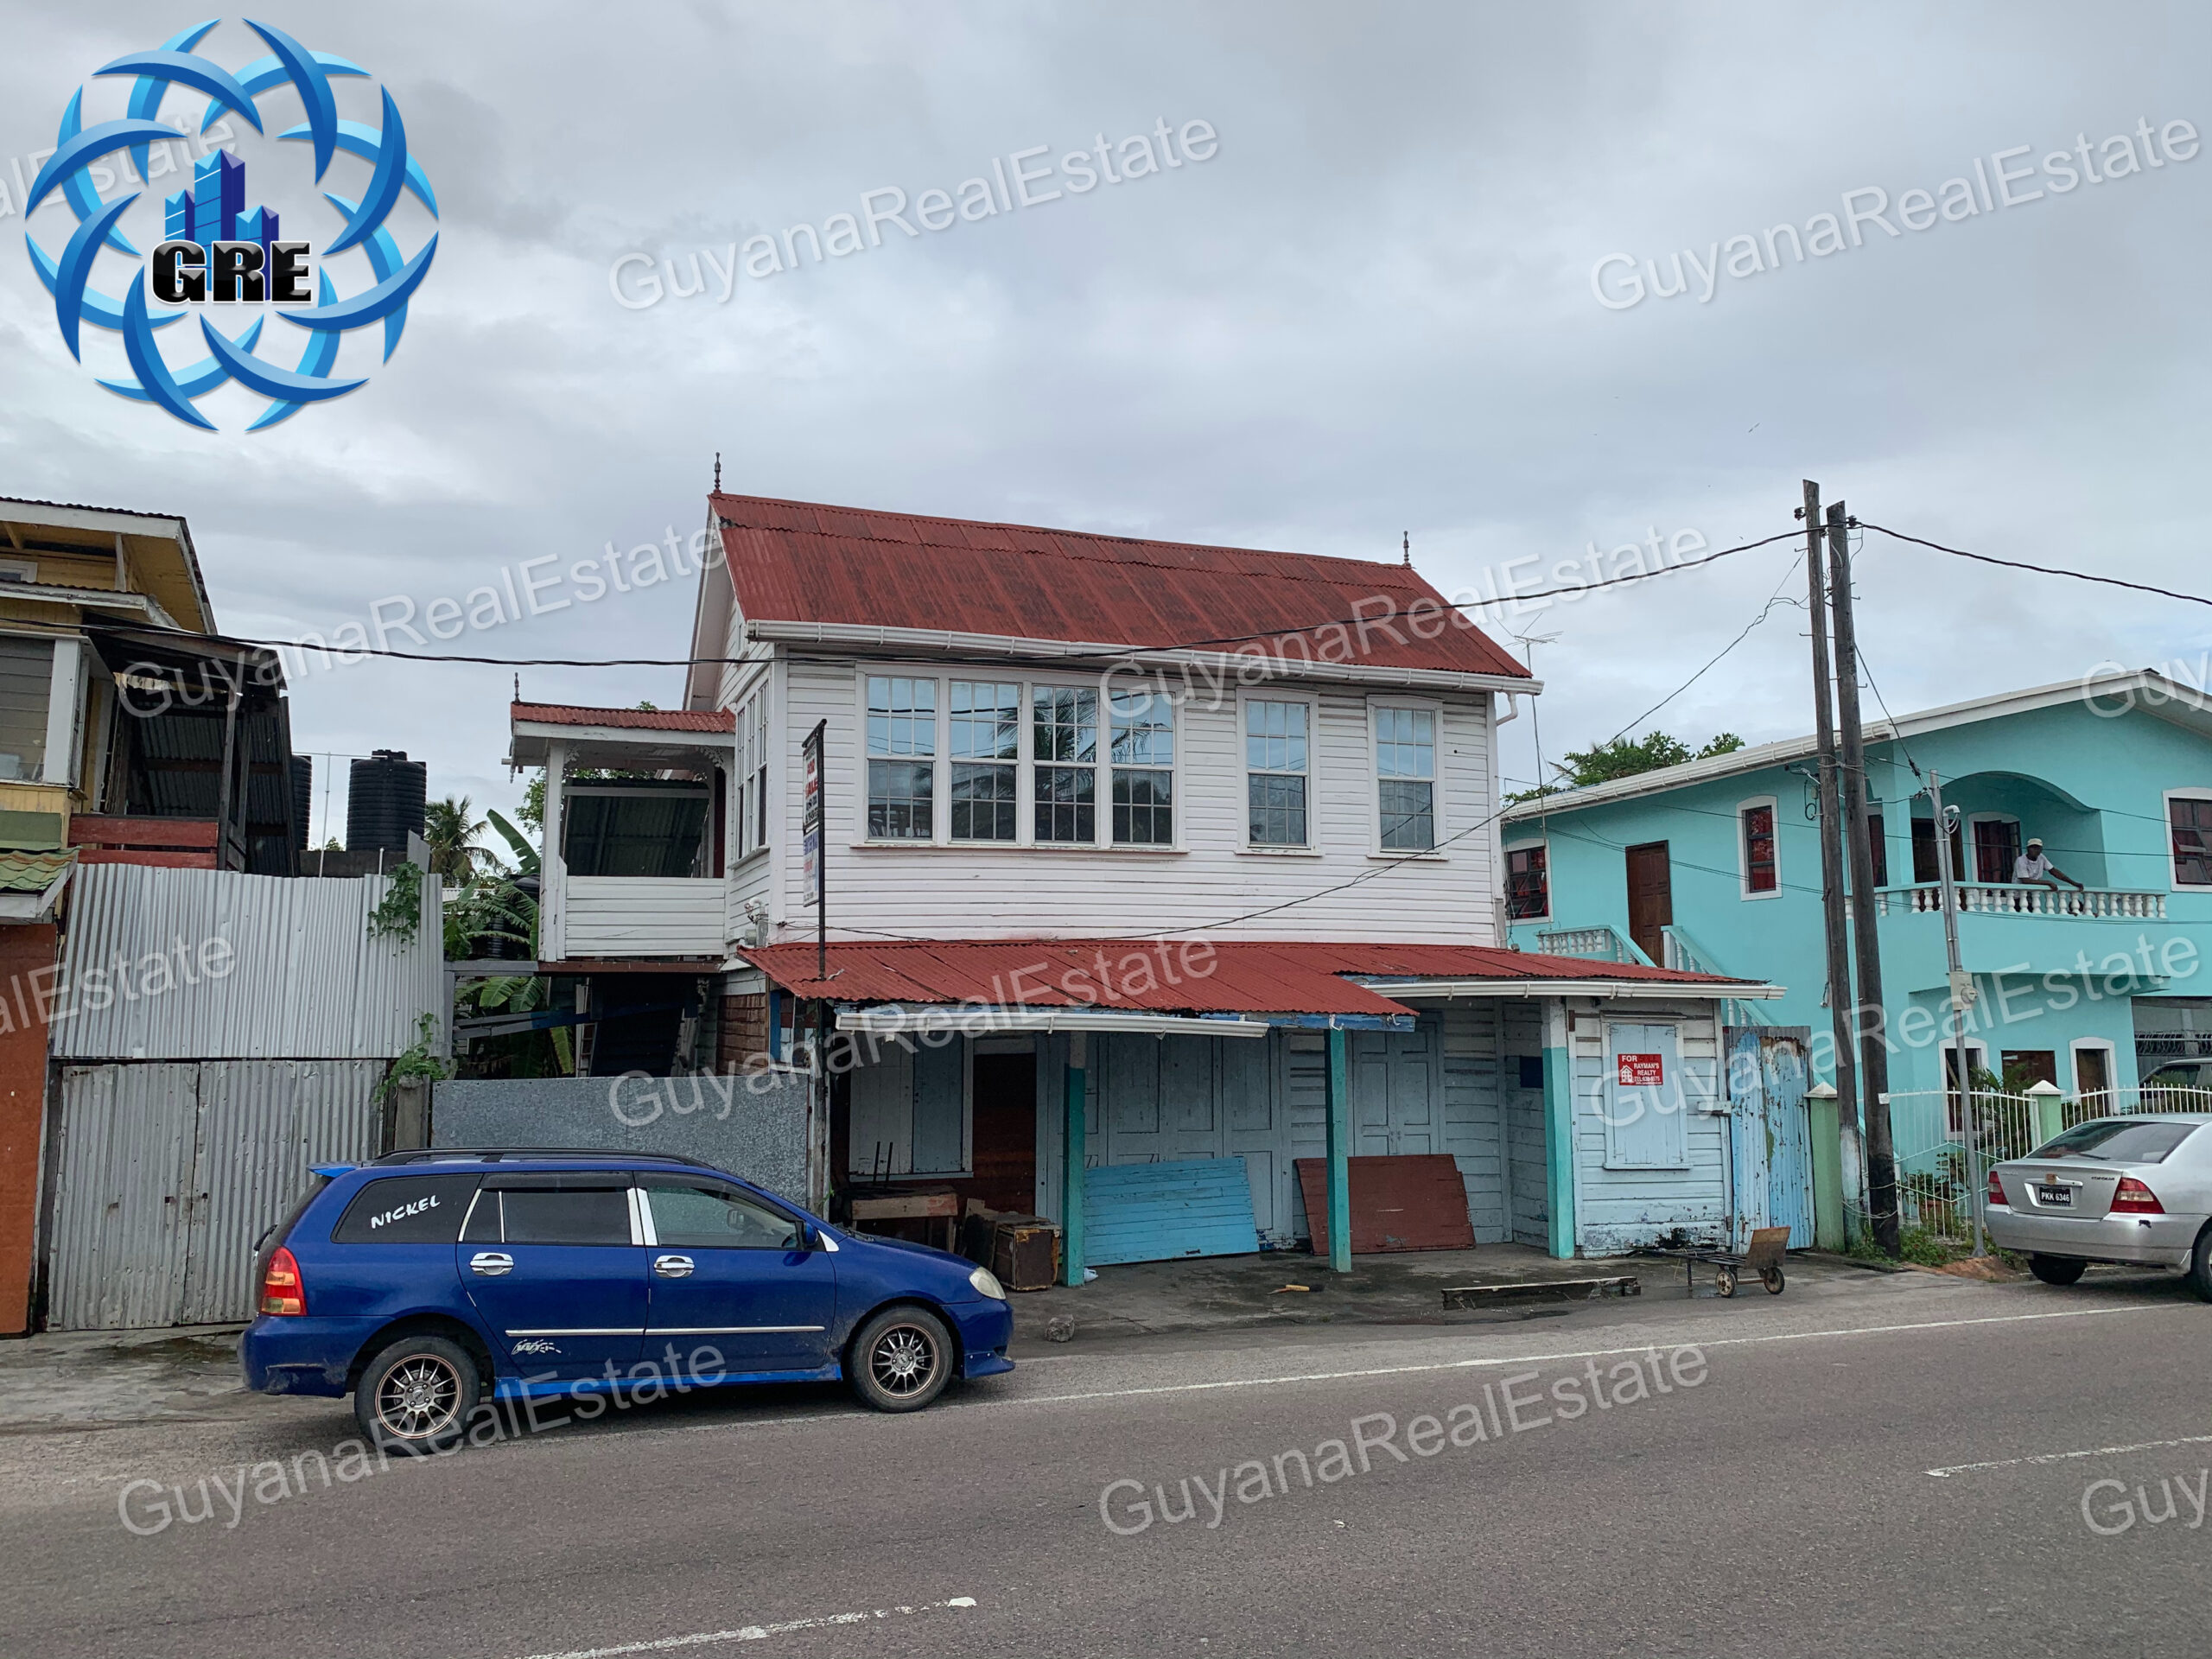 Prime Commercial Property for sale located in Plaisance on the East Coast Major Road!